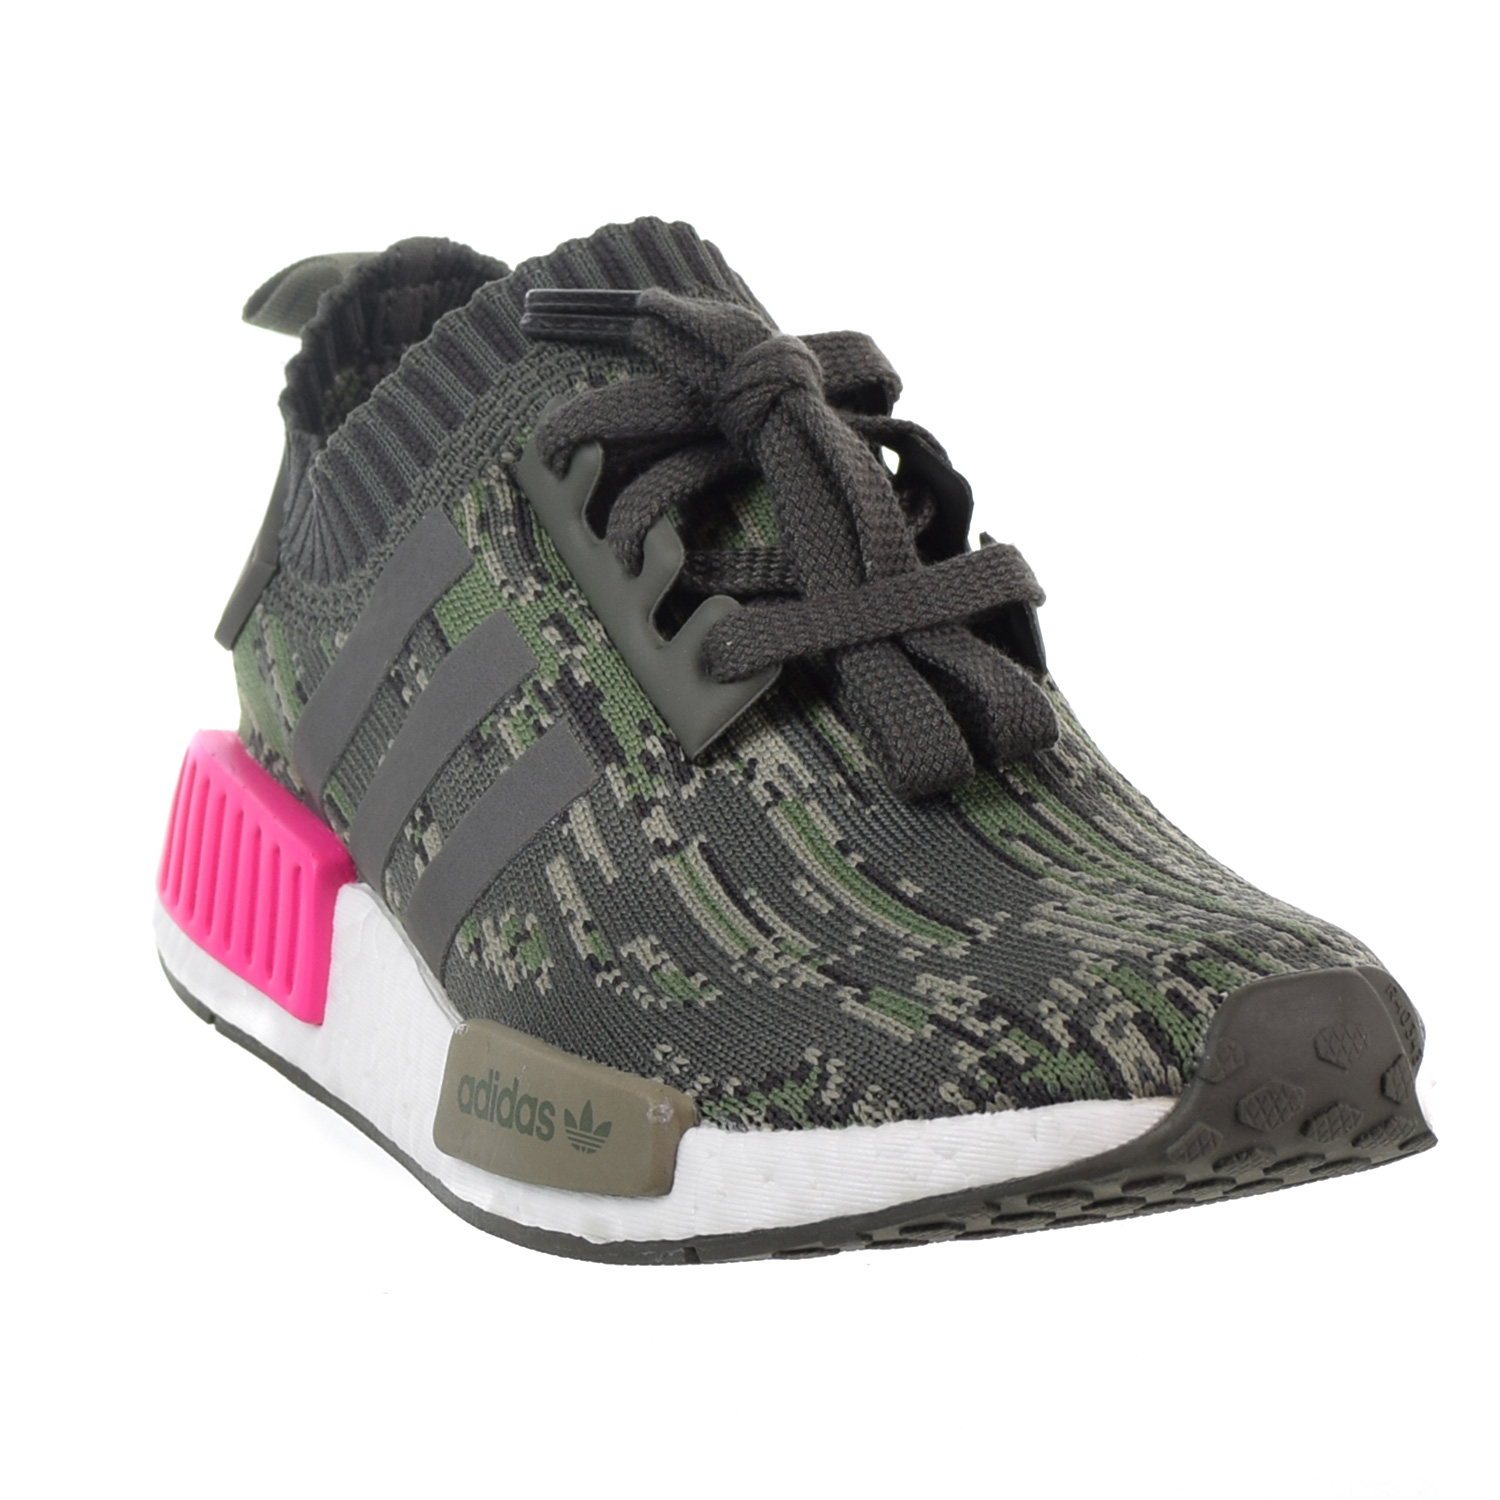 e397f477fb3c8 Adidas NMD R1 Primeknit Men s Big Kids  Shoes Utility Grey Shock Pink bz0222